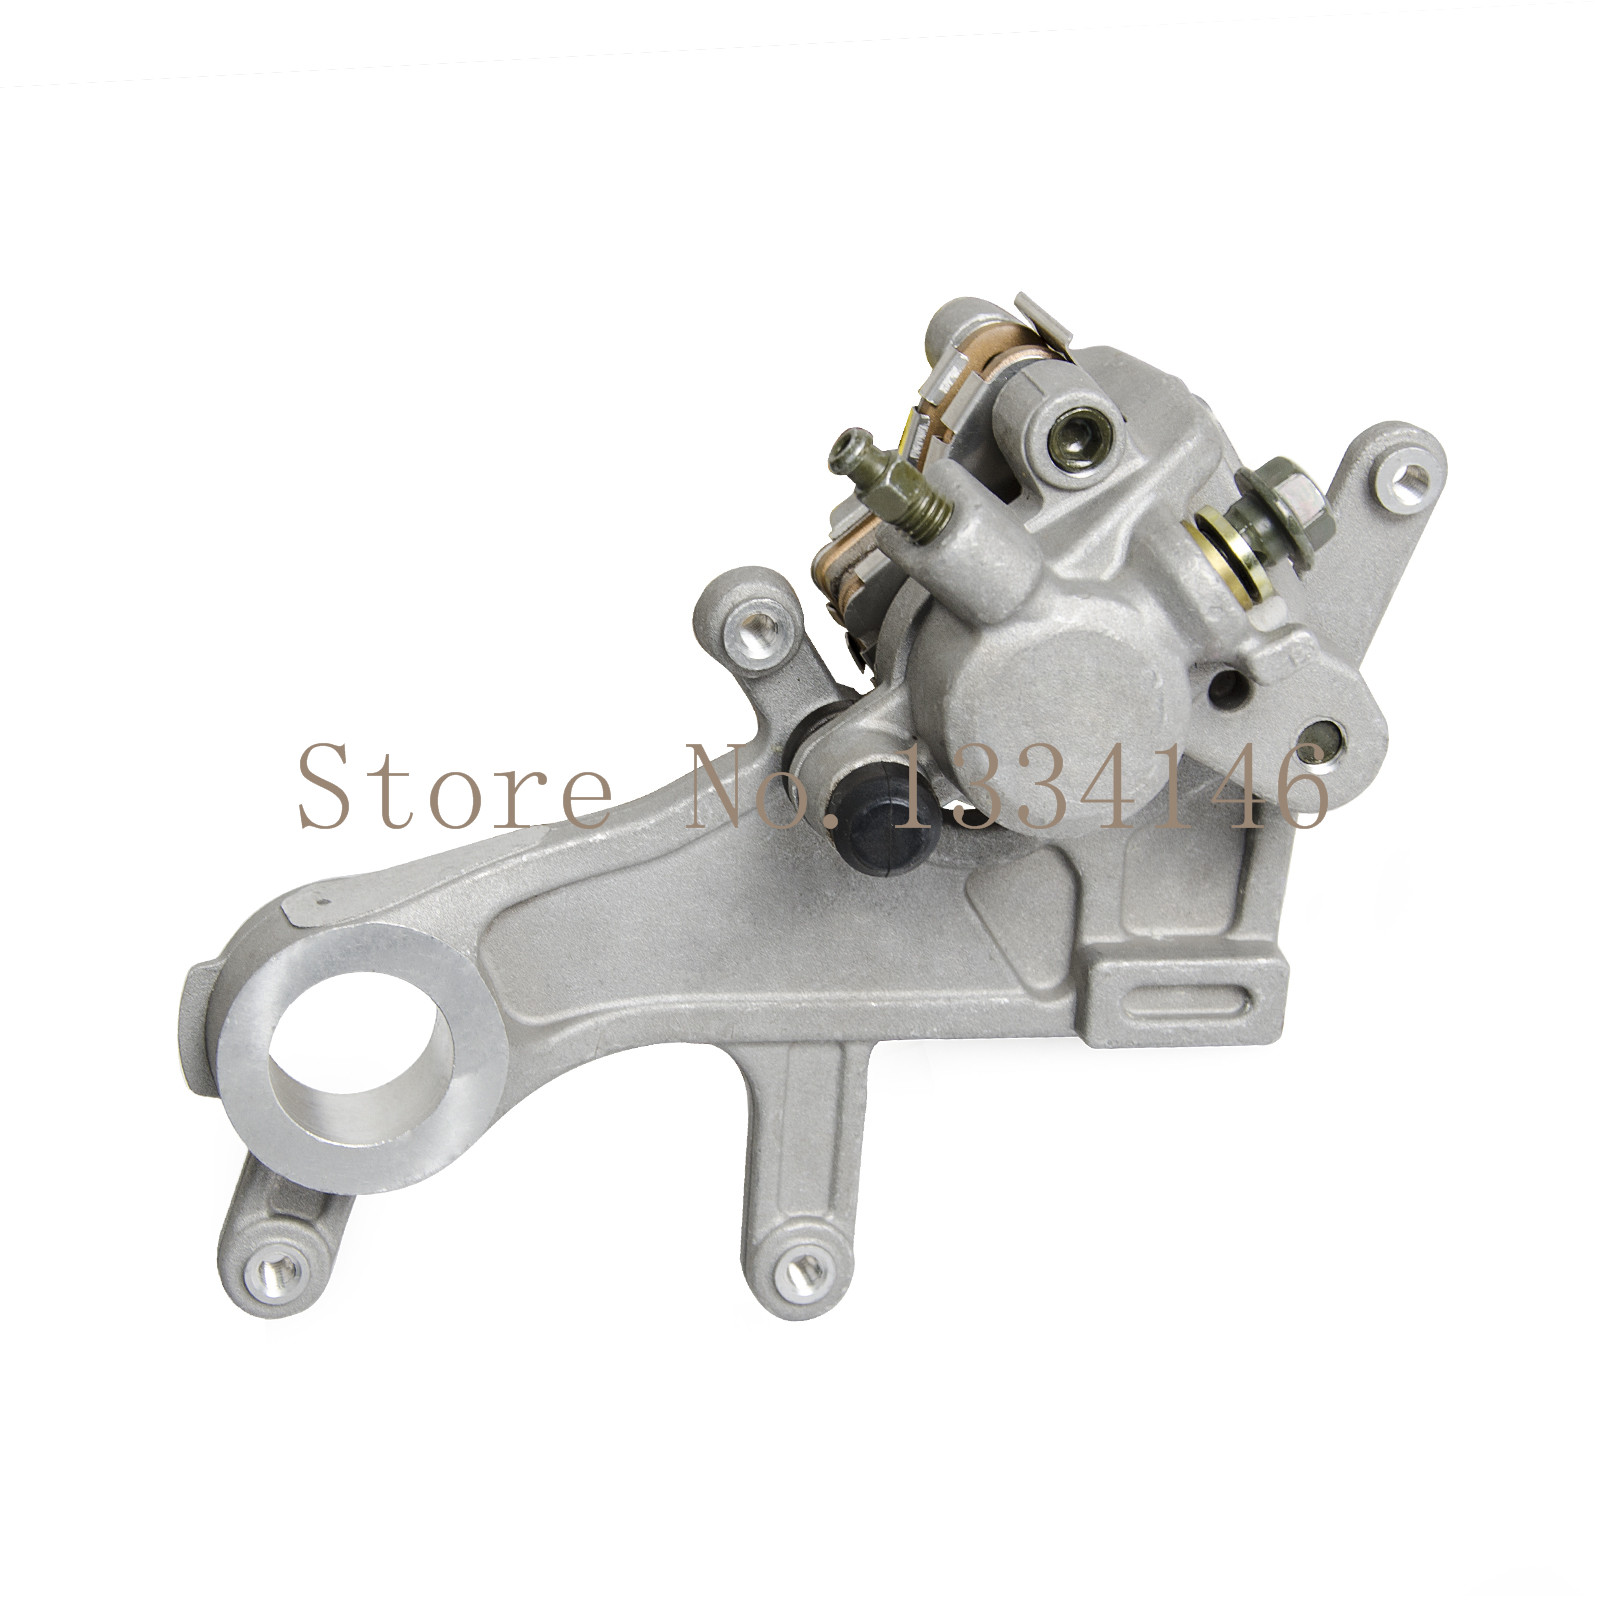 detail feedback questions about motorcycle rear brake caliper for honda crf450r 2002 2015 2016 crf450x crf 450r 450x 2005 2006 on aliexpress com alibaba  [ 1600 x 1600 Pixel ]